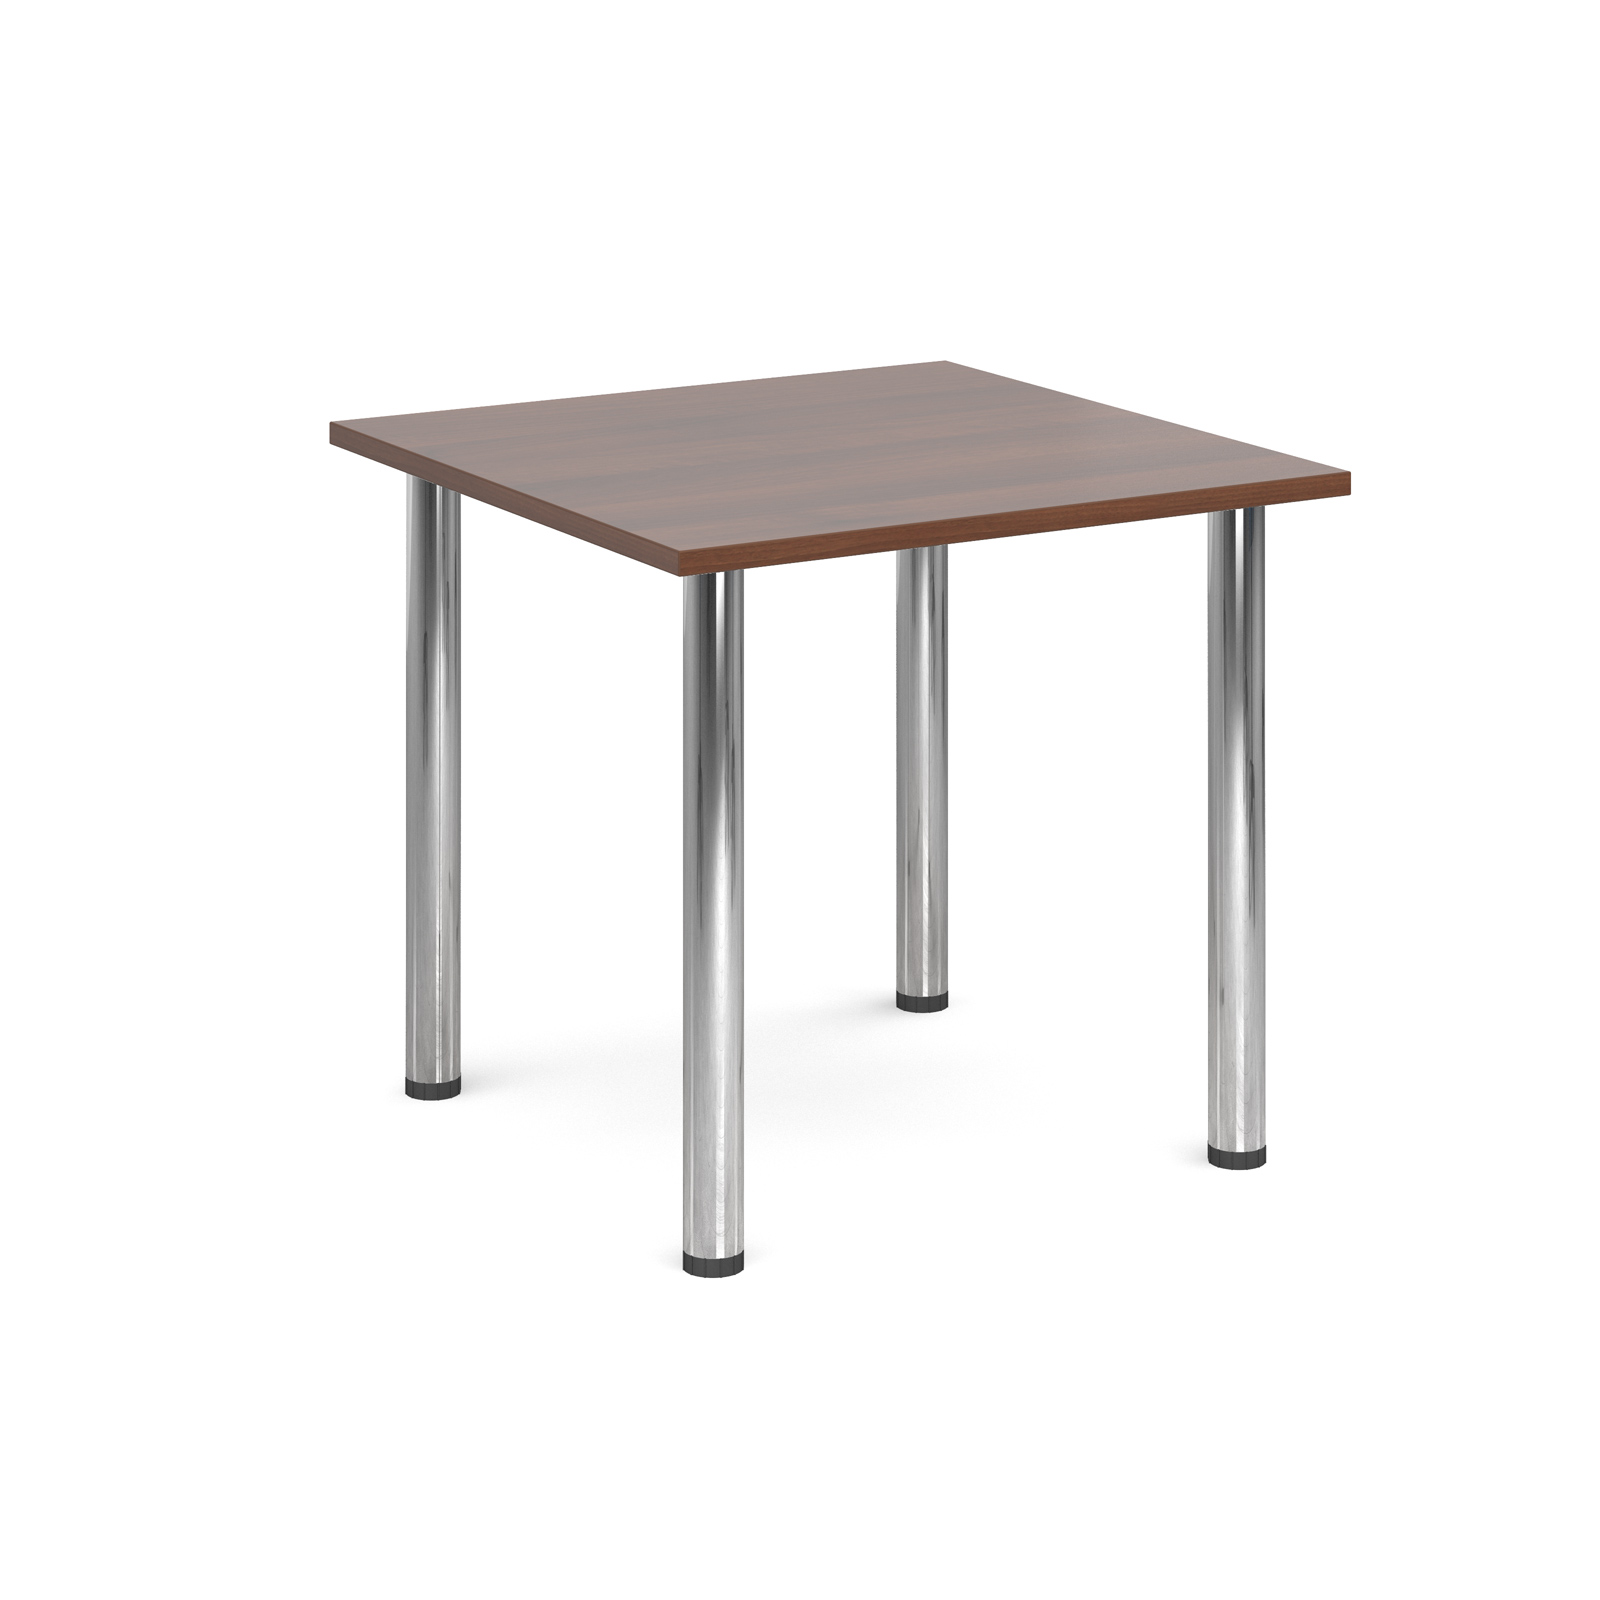 Rectangular deluxe chrome radial leg table 800mm x 800mm - walnut